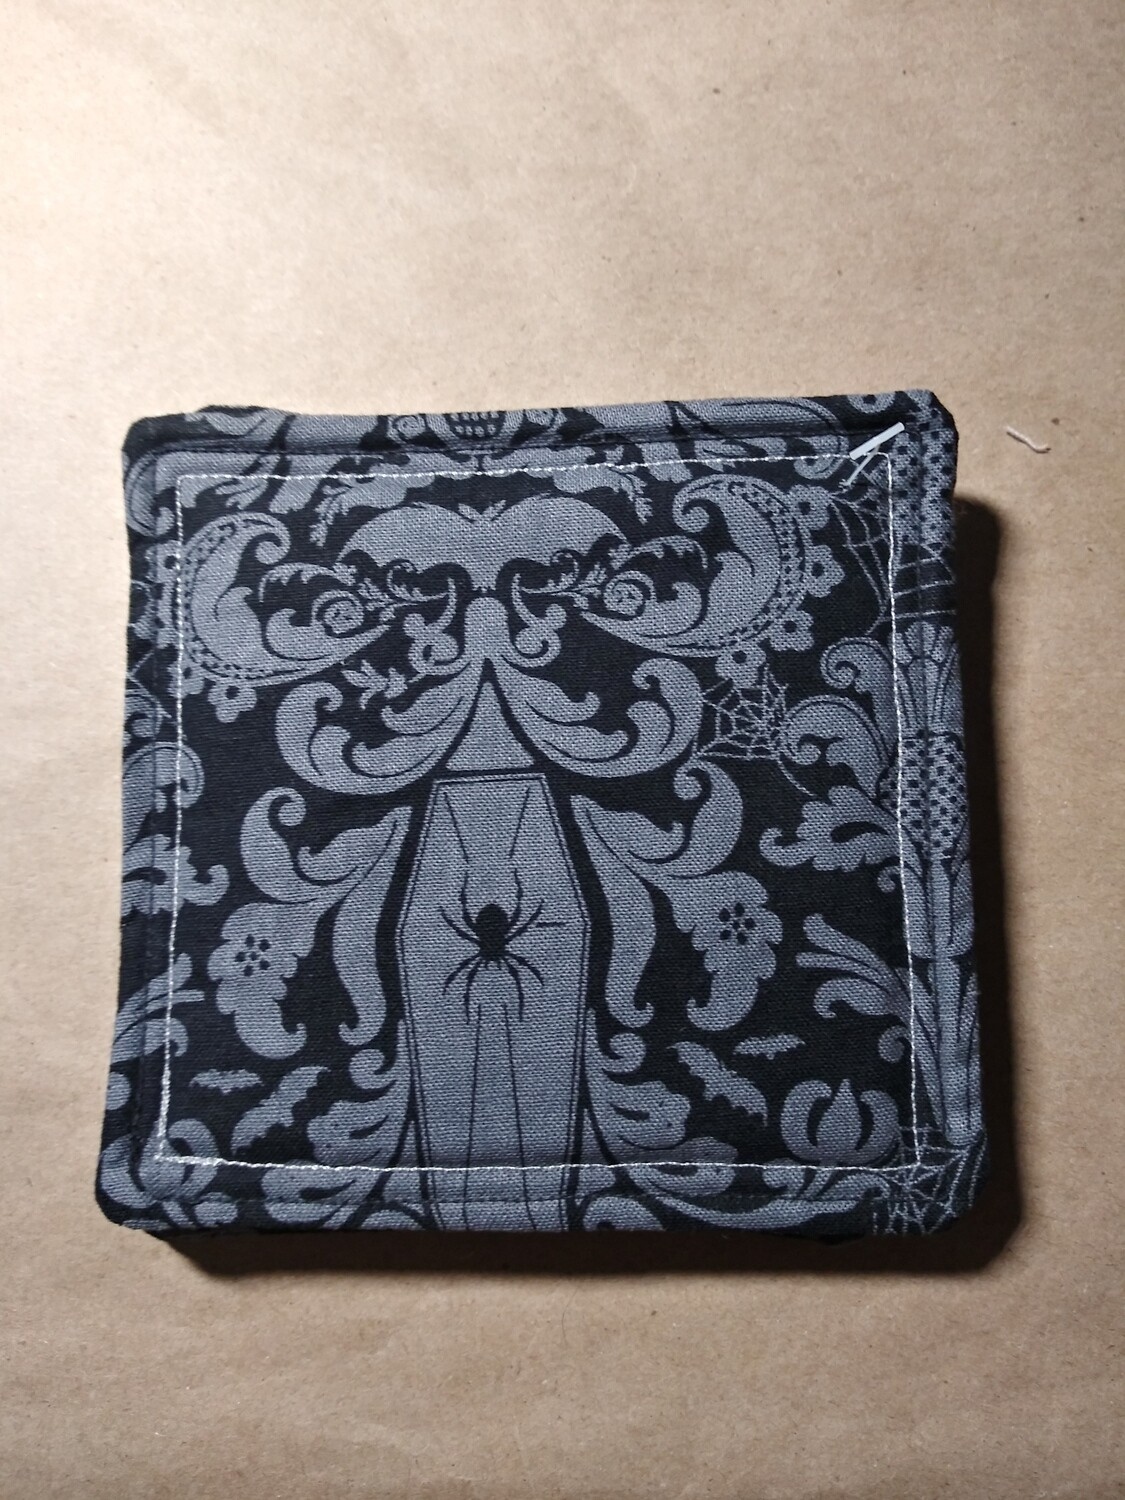 Gothic Grey and Black Coasters